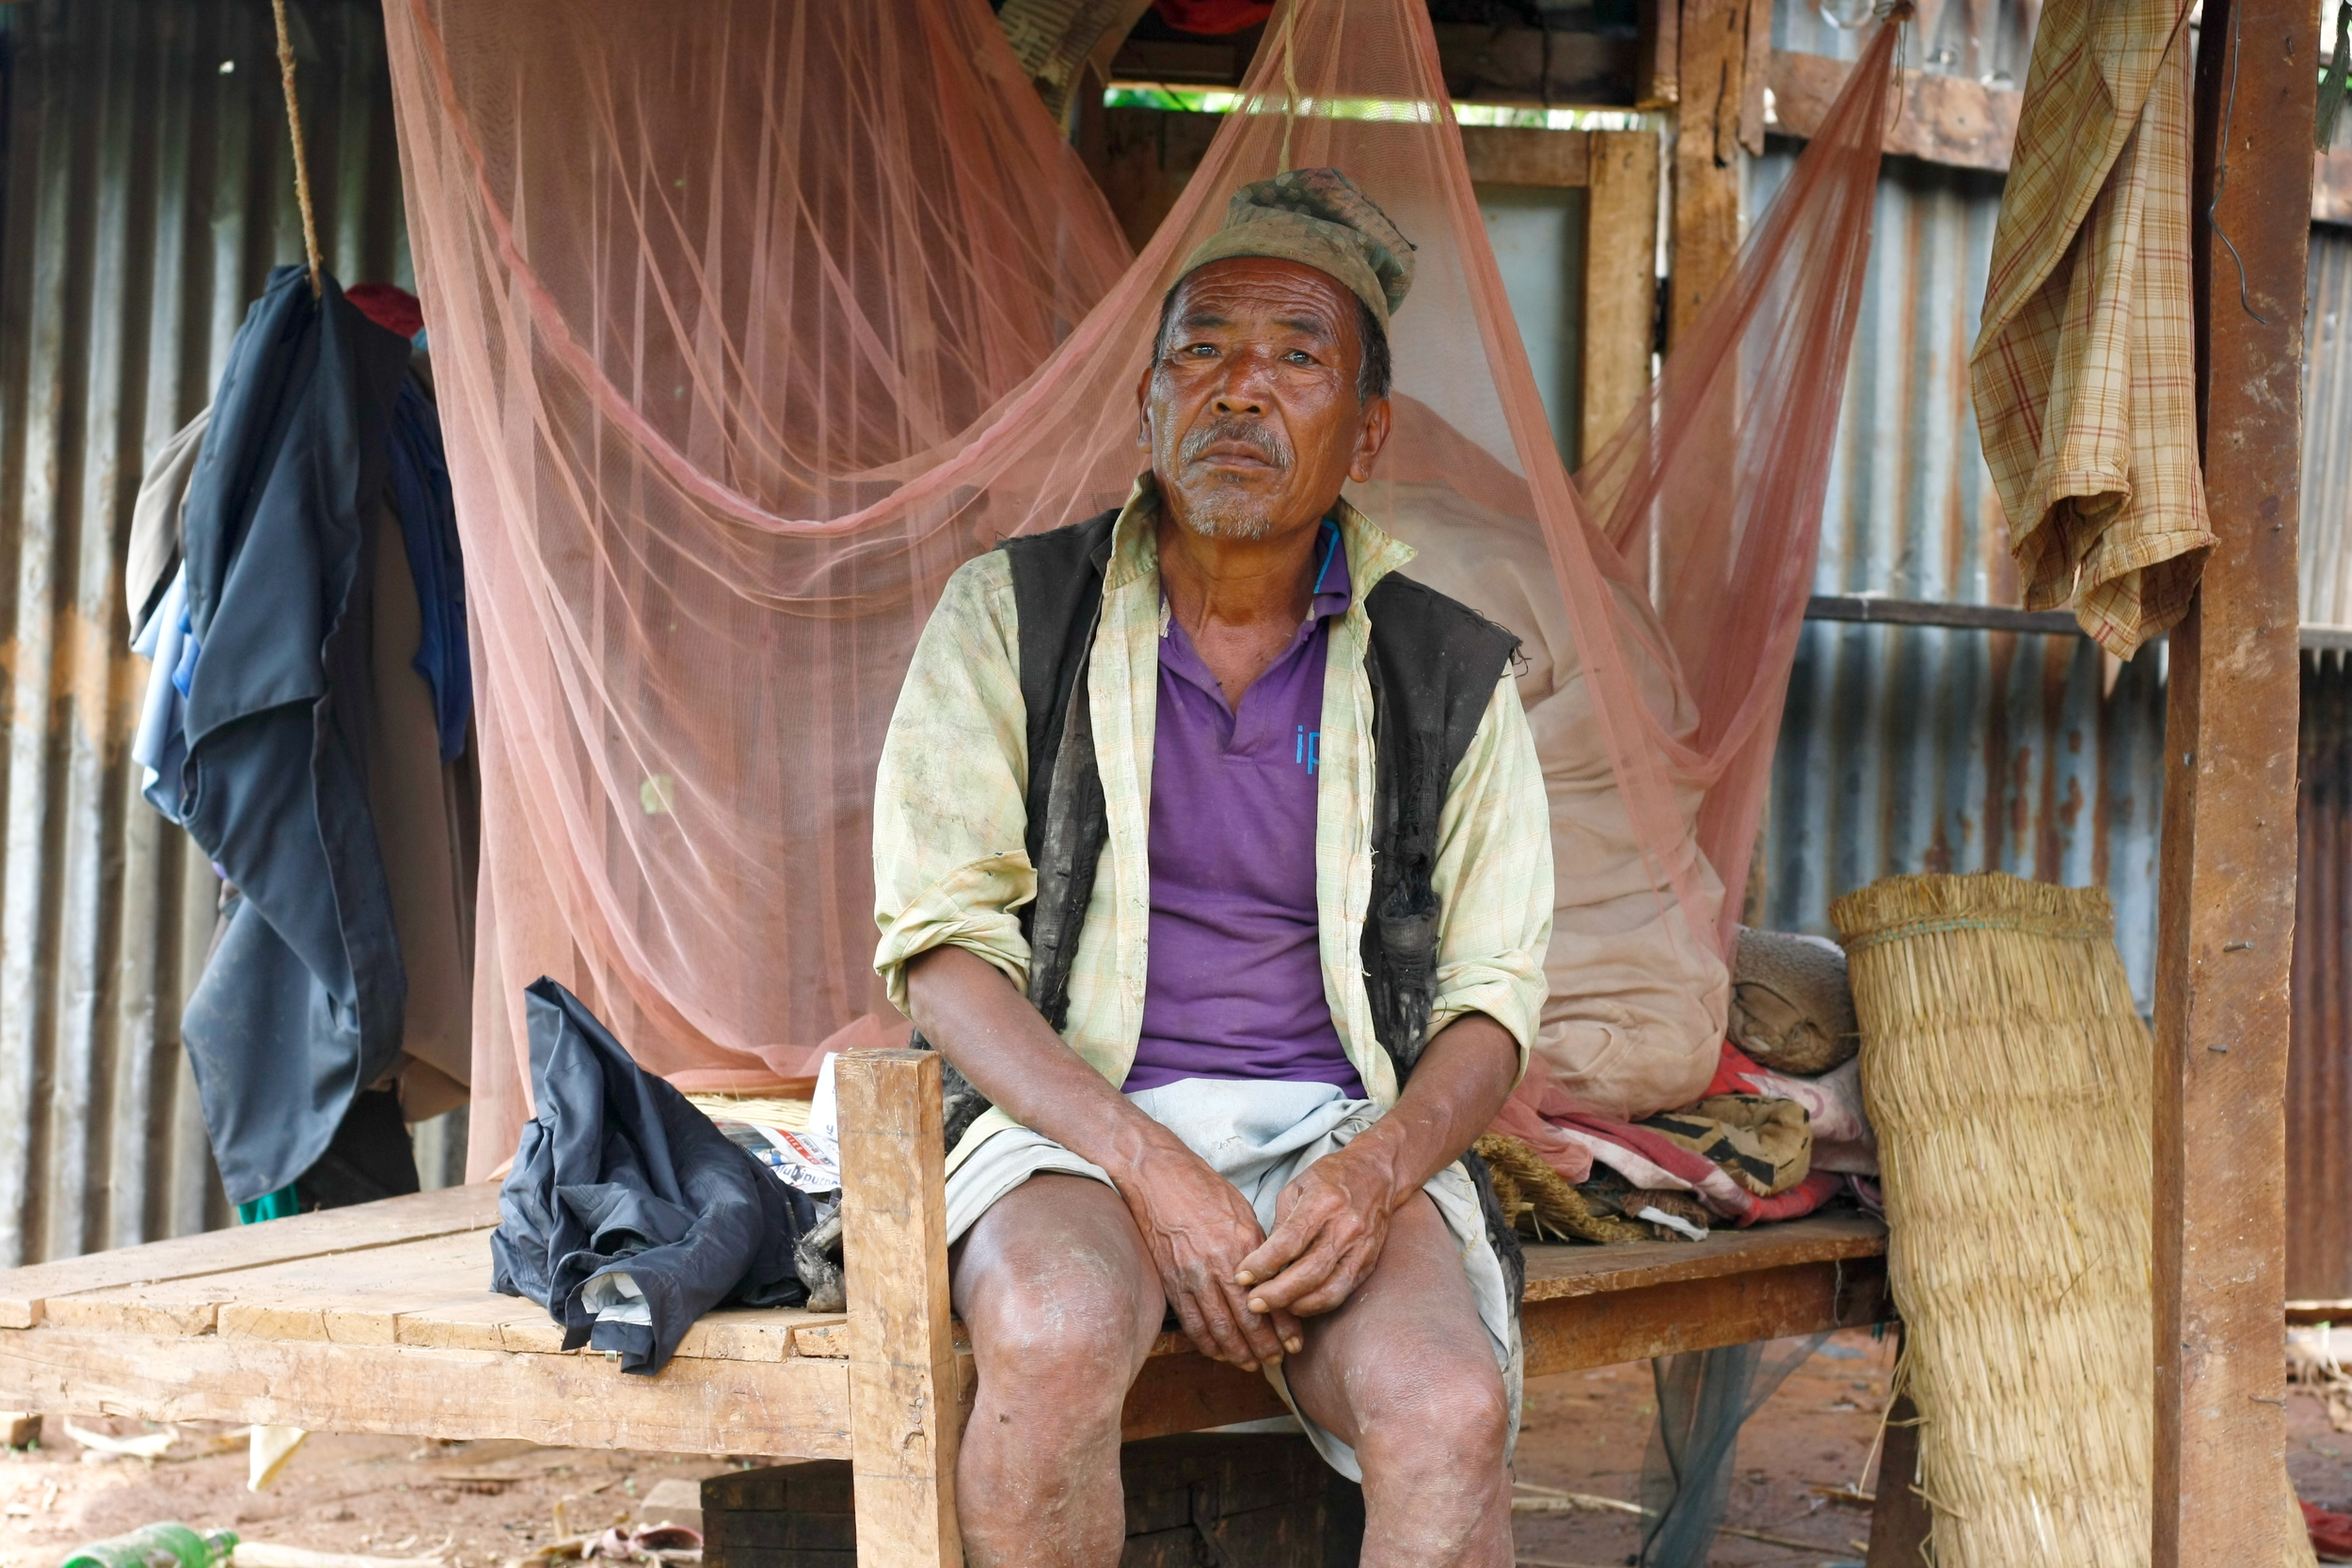 Gunda Bahadur Tamang inside his temporary shelter, sitting atop the wooden platform he uses as a bed. The pink see-through material behind him is an improvised mosquito net, a bit of ingenious craftiness to help him sleep while otherwise exposed to the elements